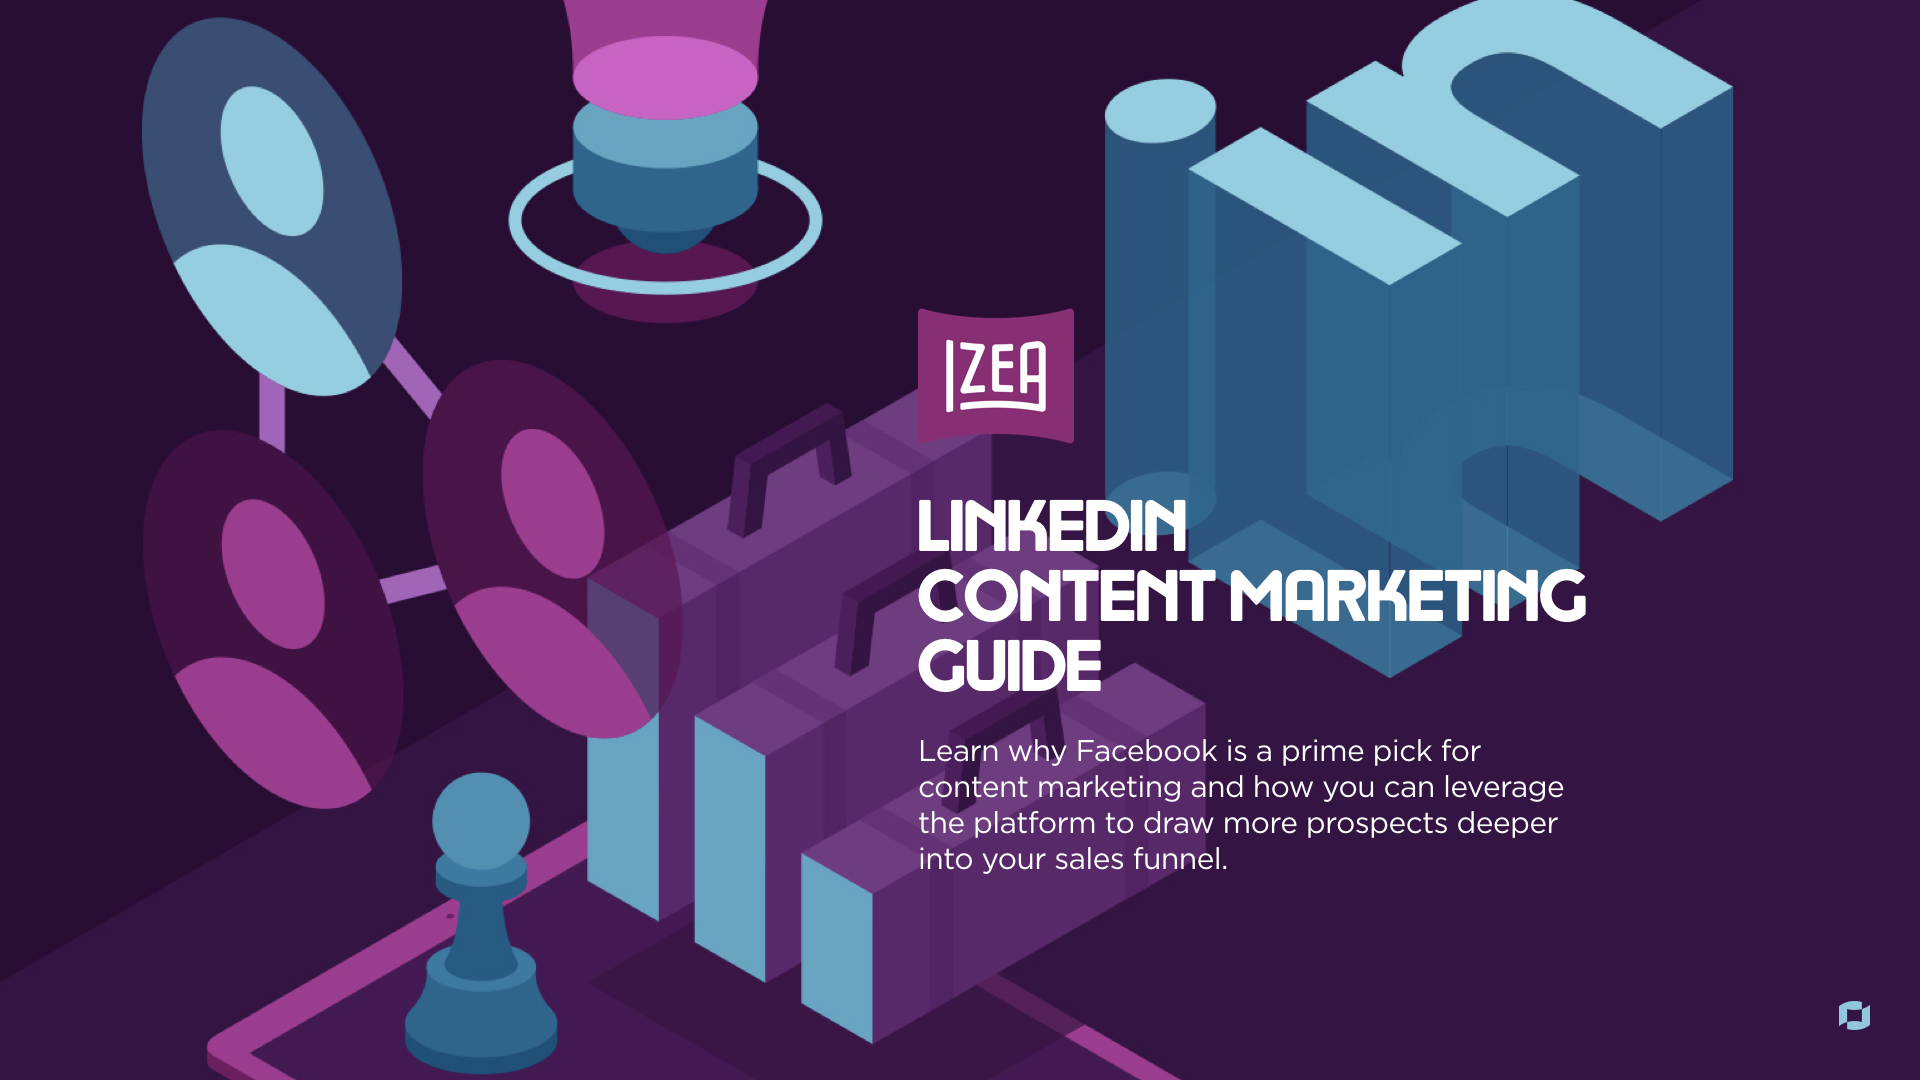 LinkedIn Content Marketing Cover